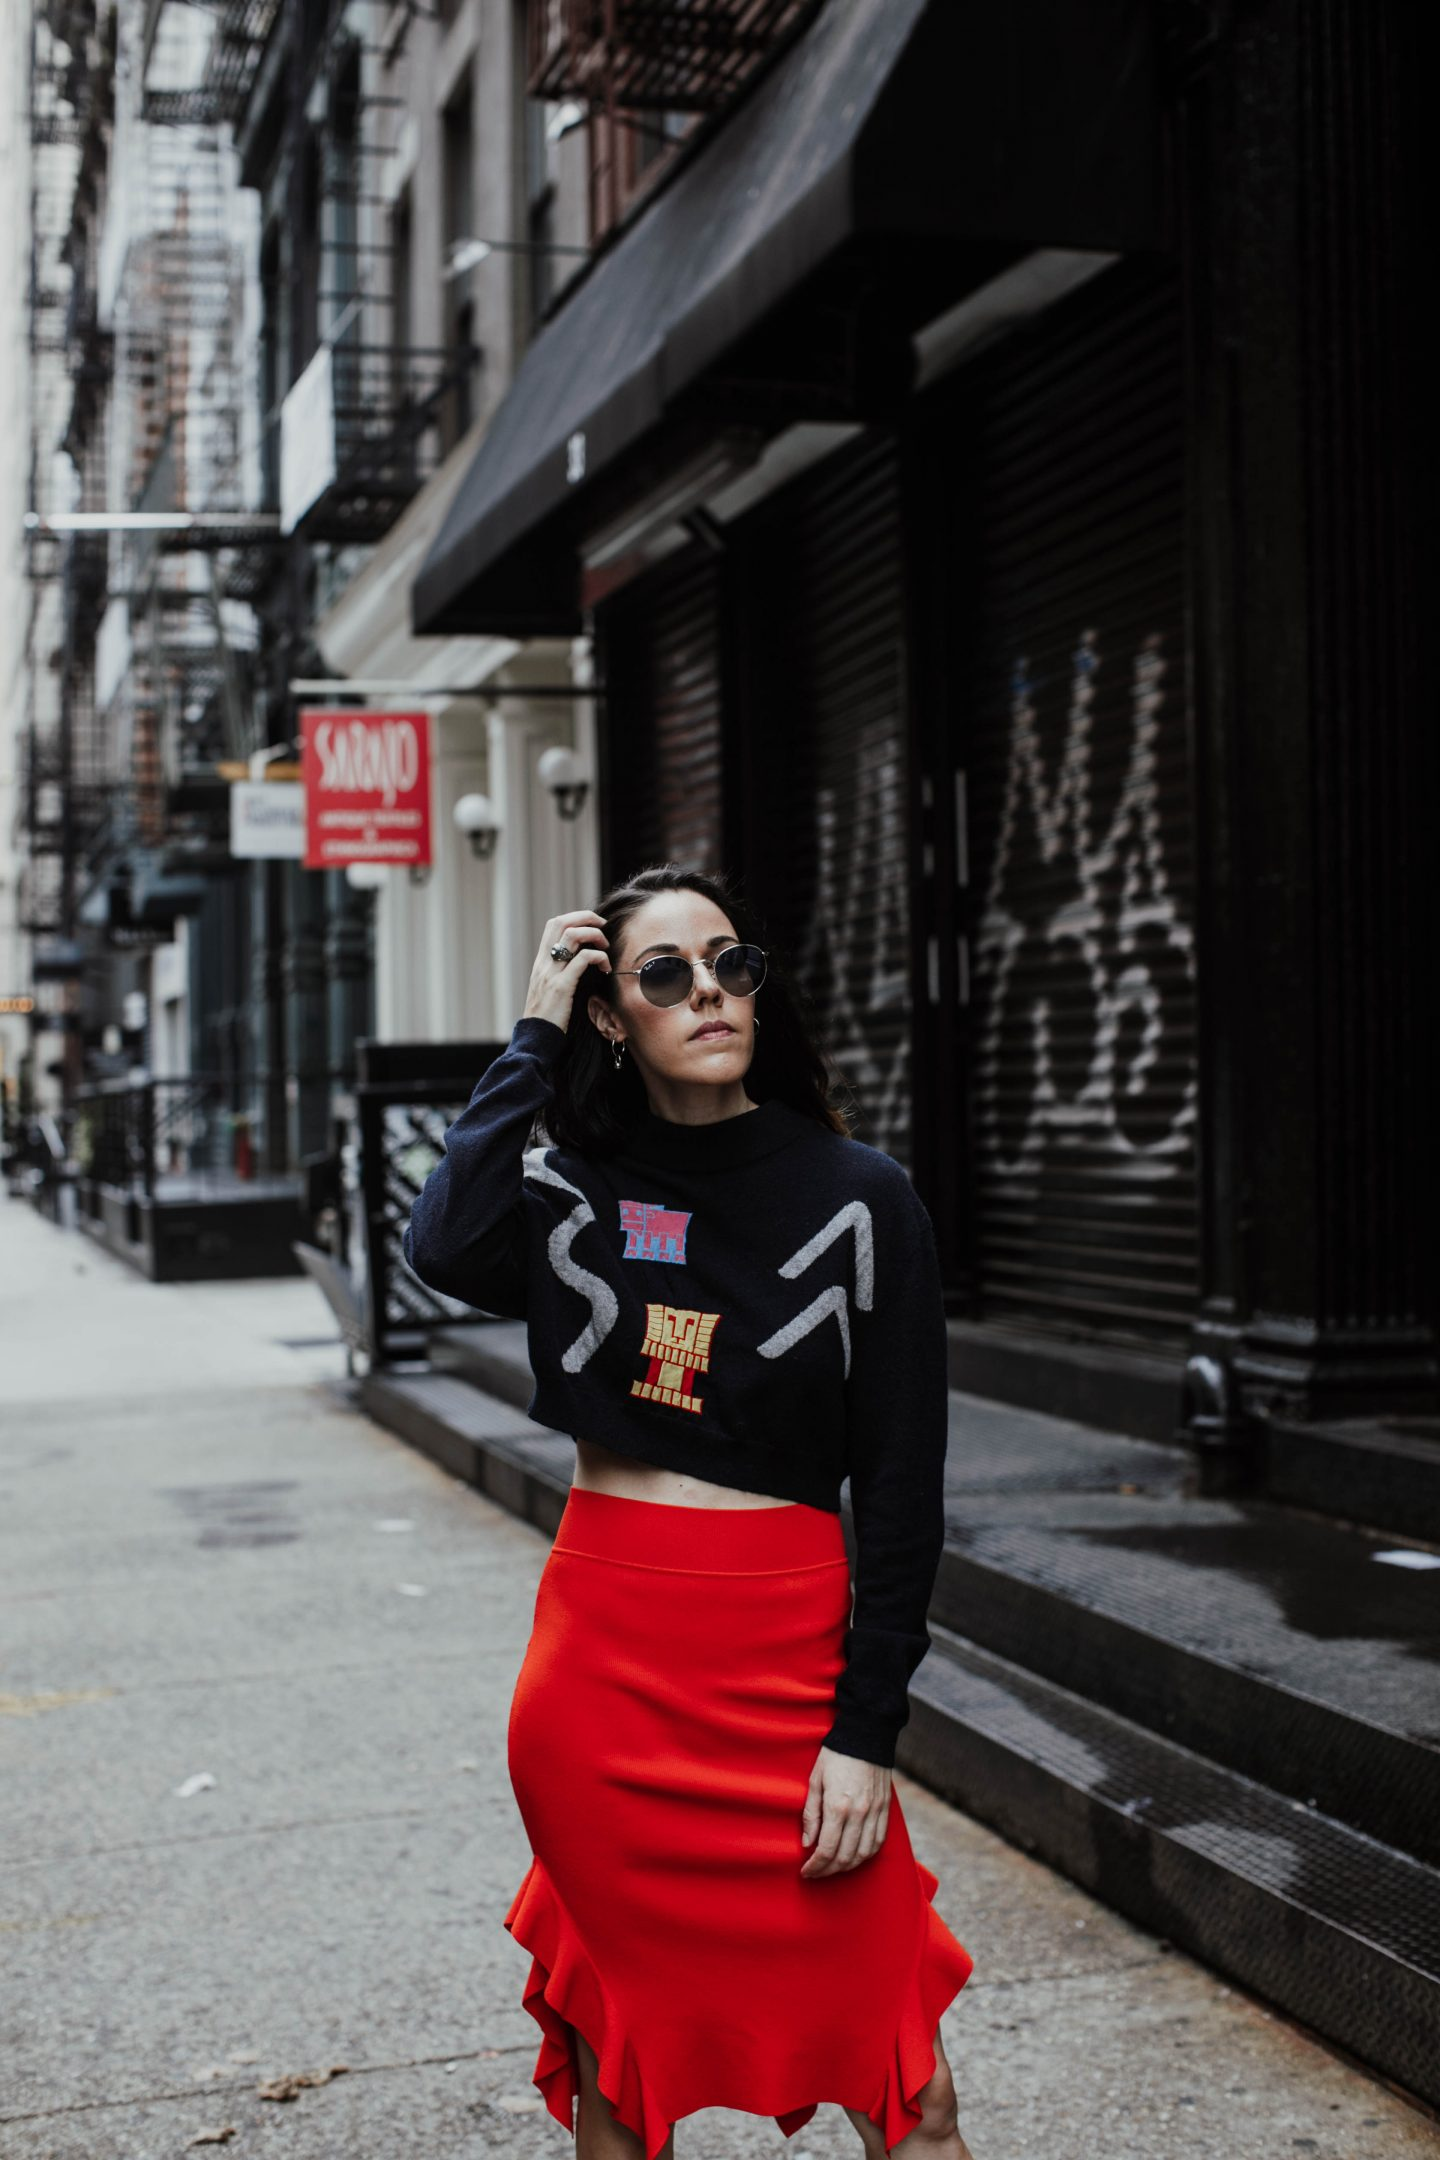 Opening Ceremony Side Flounce Skirt x Nike Cortez x Peter Pilotto Abstract Crop Sweater x Ray Ban x See By Chloe Backpack